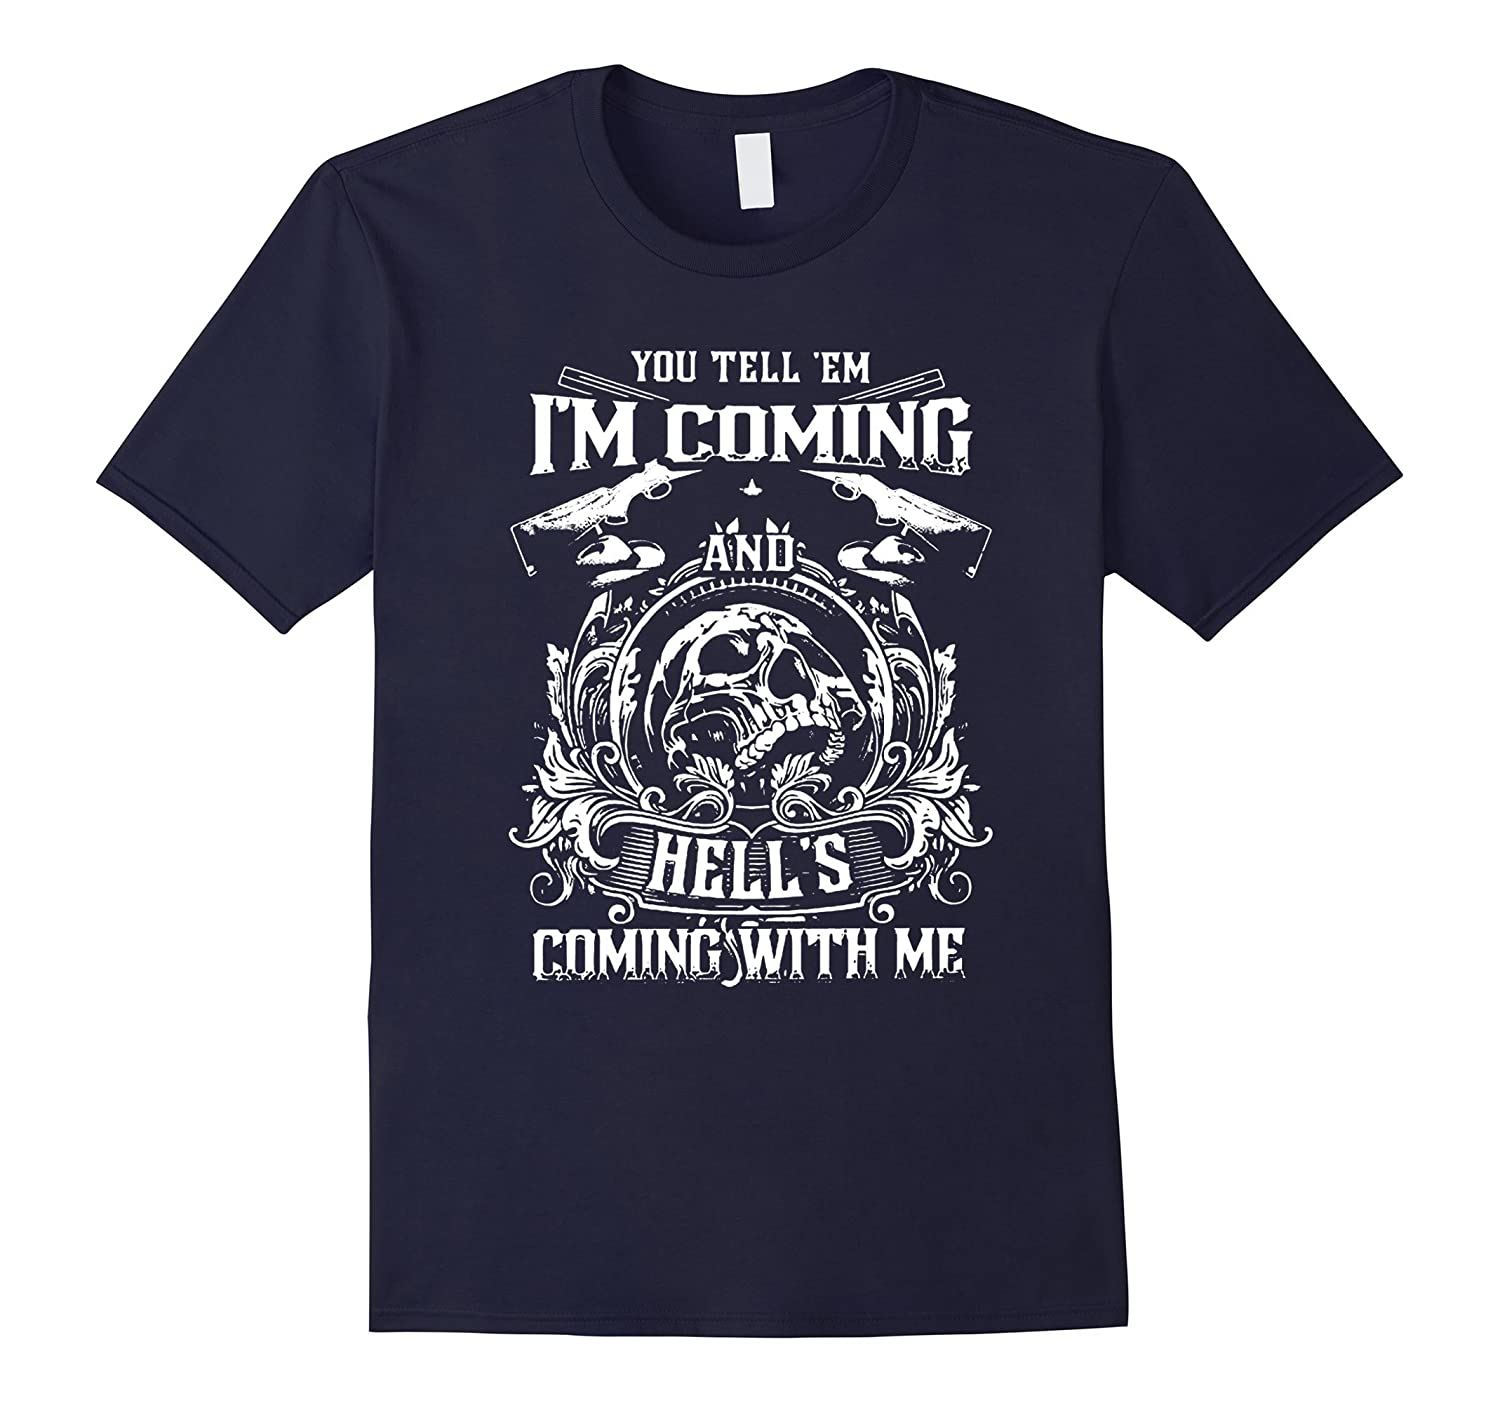 You Tell 'em I'm Coming And Hell's Coming Wth Me Shirt-TH